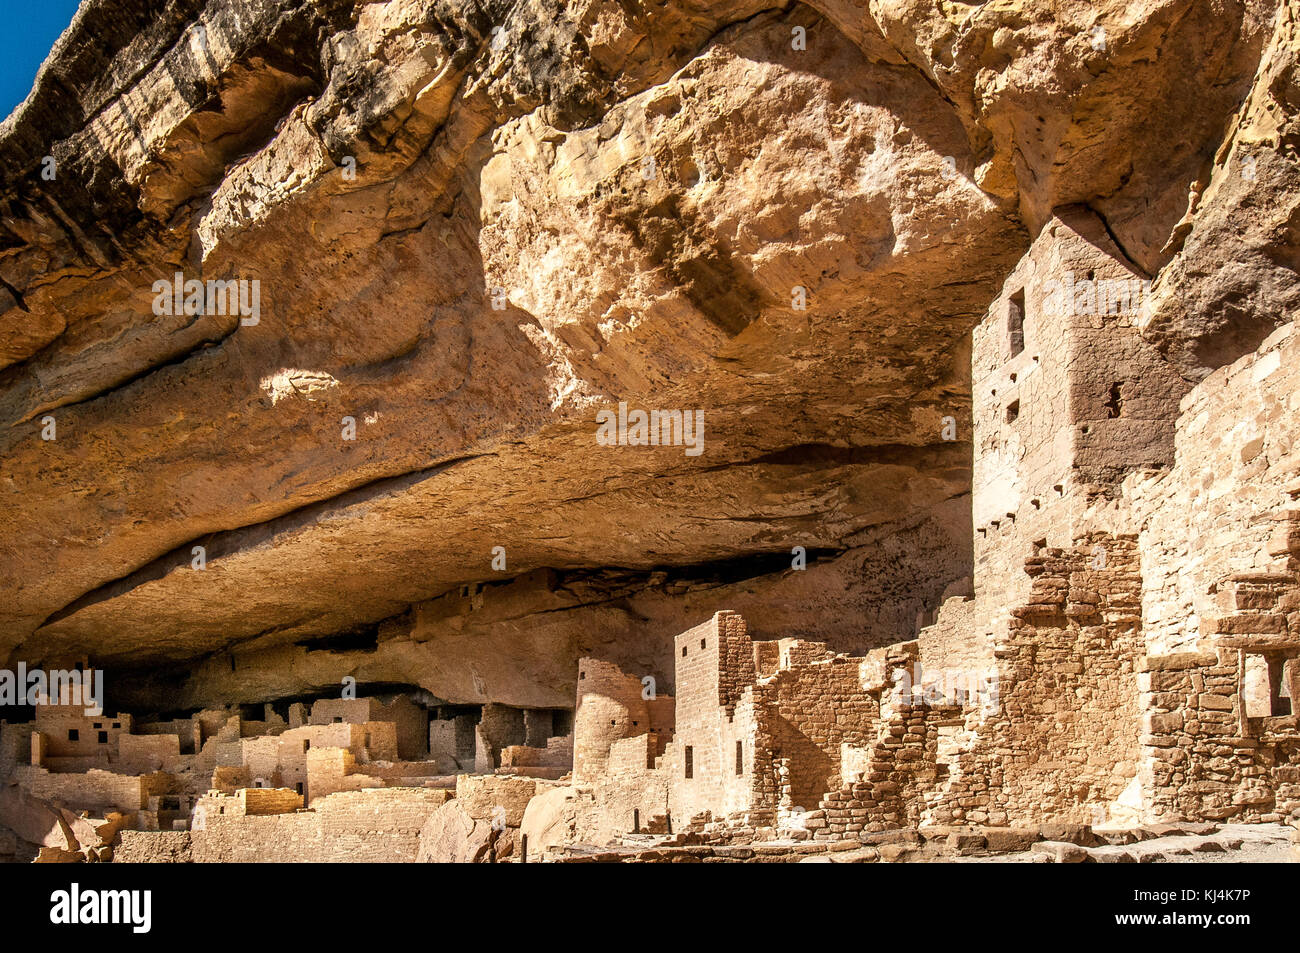 Cliff Palace, cliff dwelling habitat ruins of the Anasazis Indians in Mesa Verde National Park - Stock Image